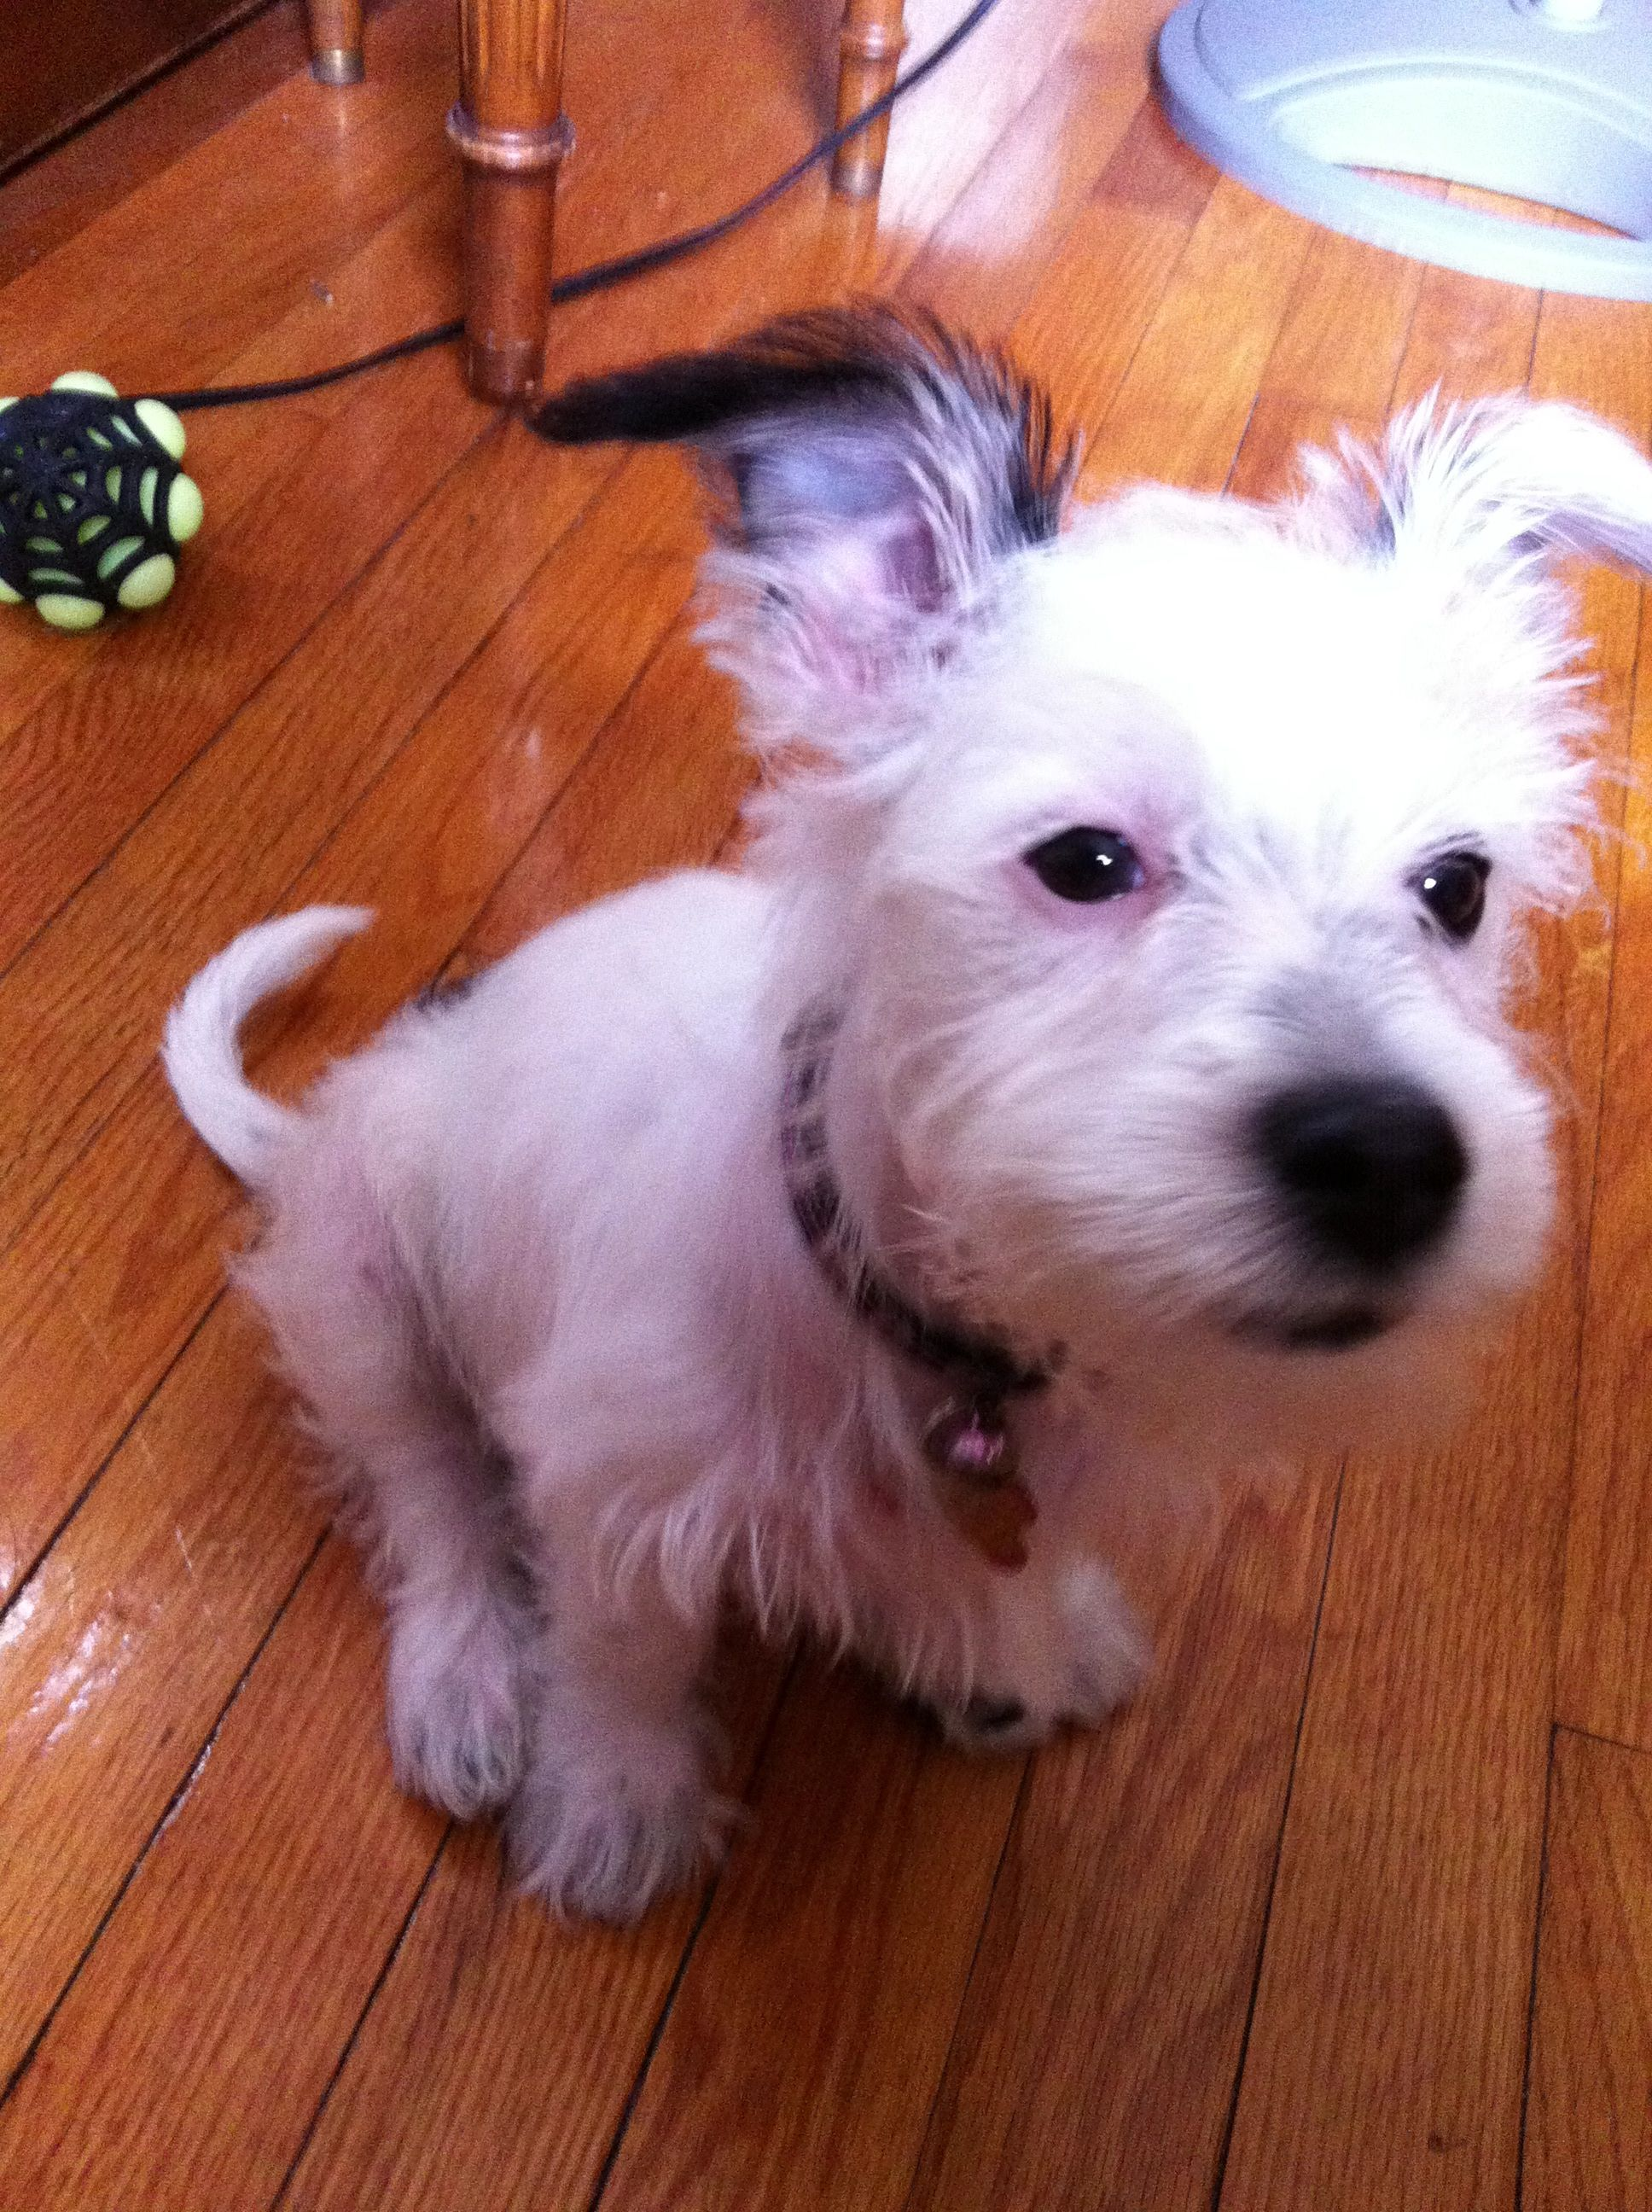 Our little Schnack! Miniature Schnauzer and Jack Russell mix